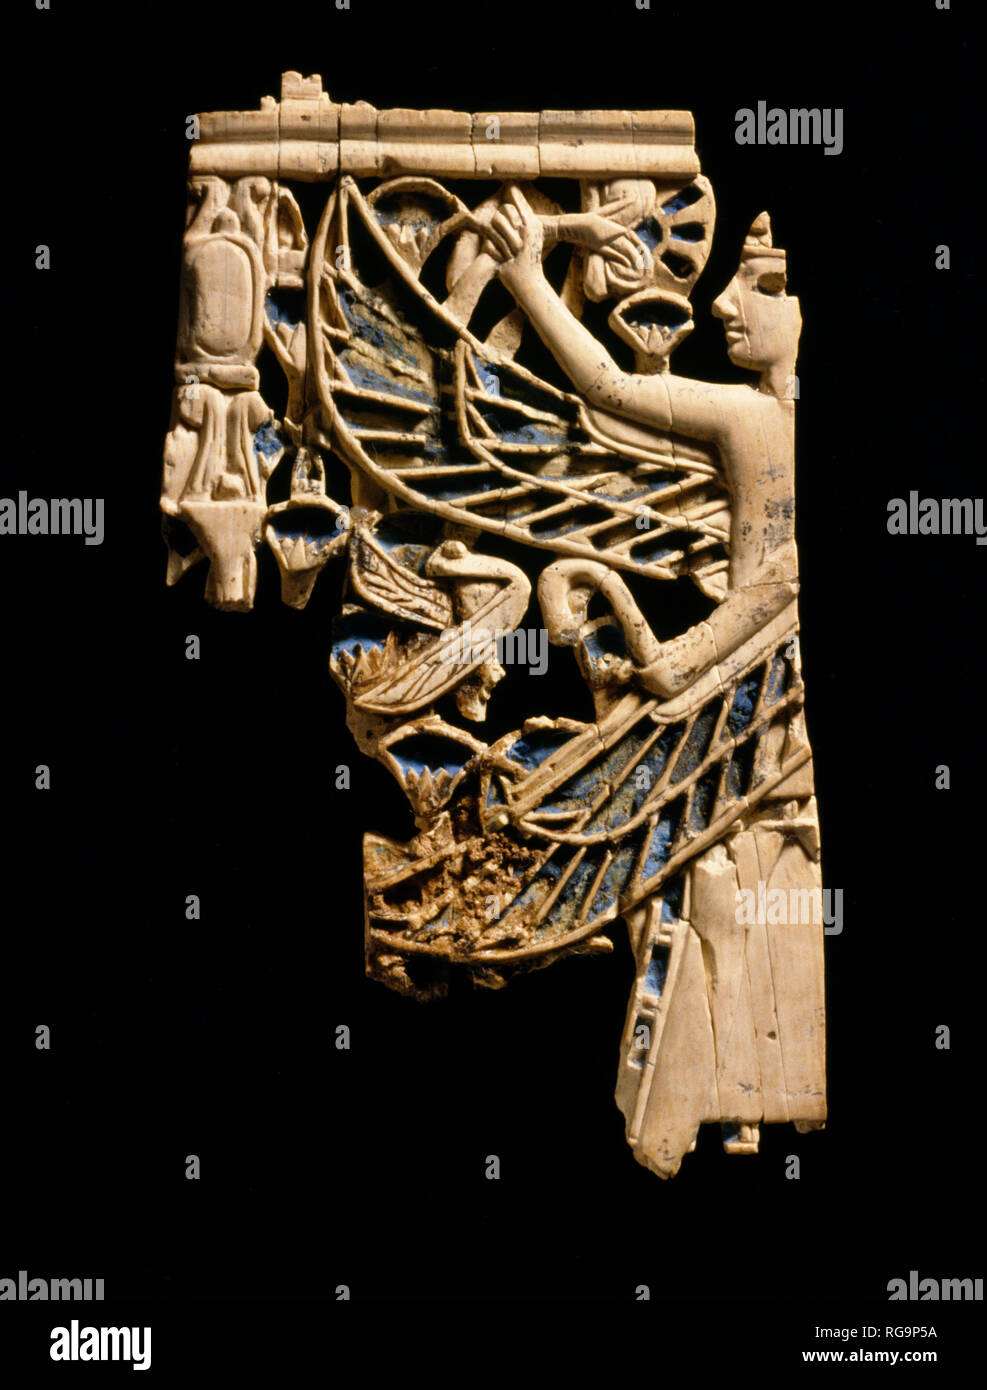 Winged male figure: Nimrud Ivory from Room SW37 Fort Shalmaneser within the Assyrian city of Nimrud, Iraq, photographed in the Iraq Museum, Baghdad. - Stock Image